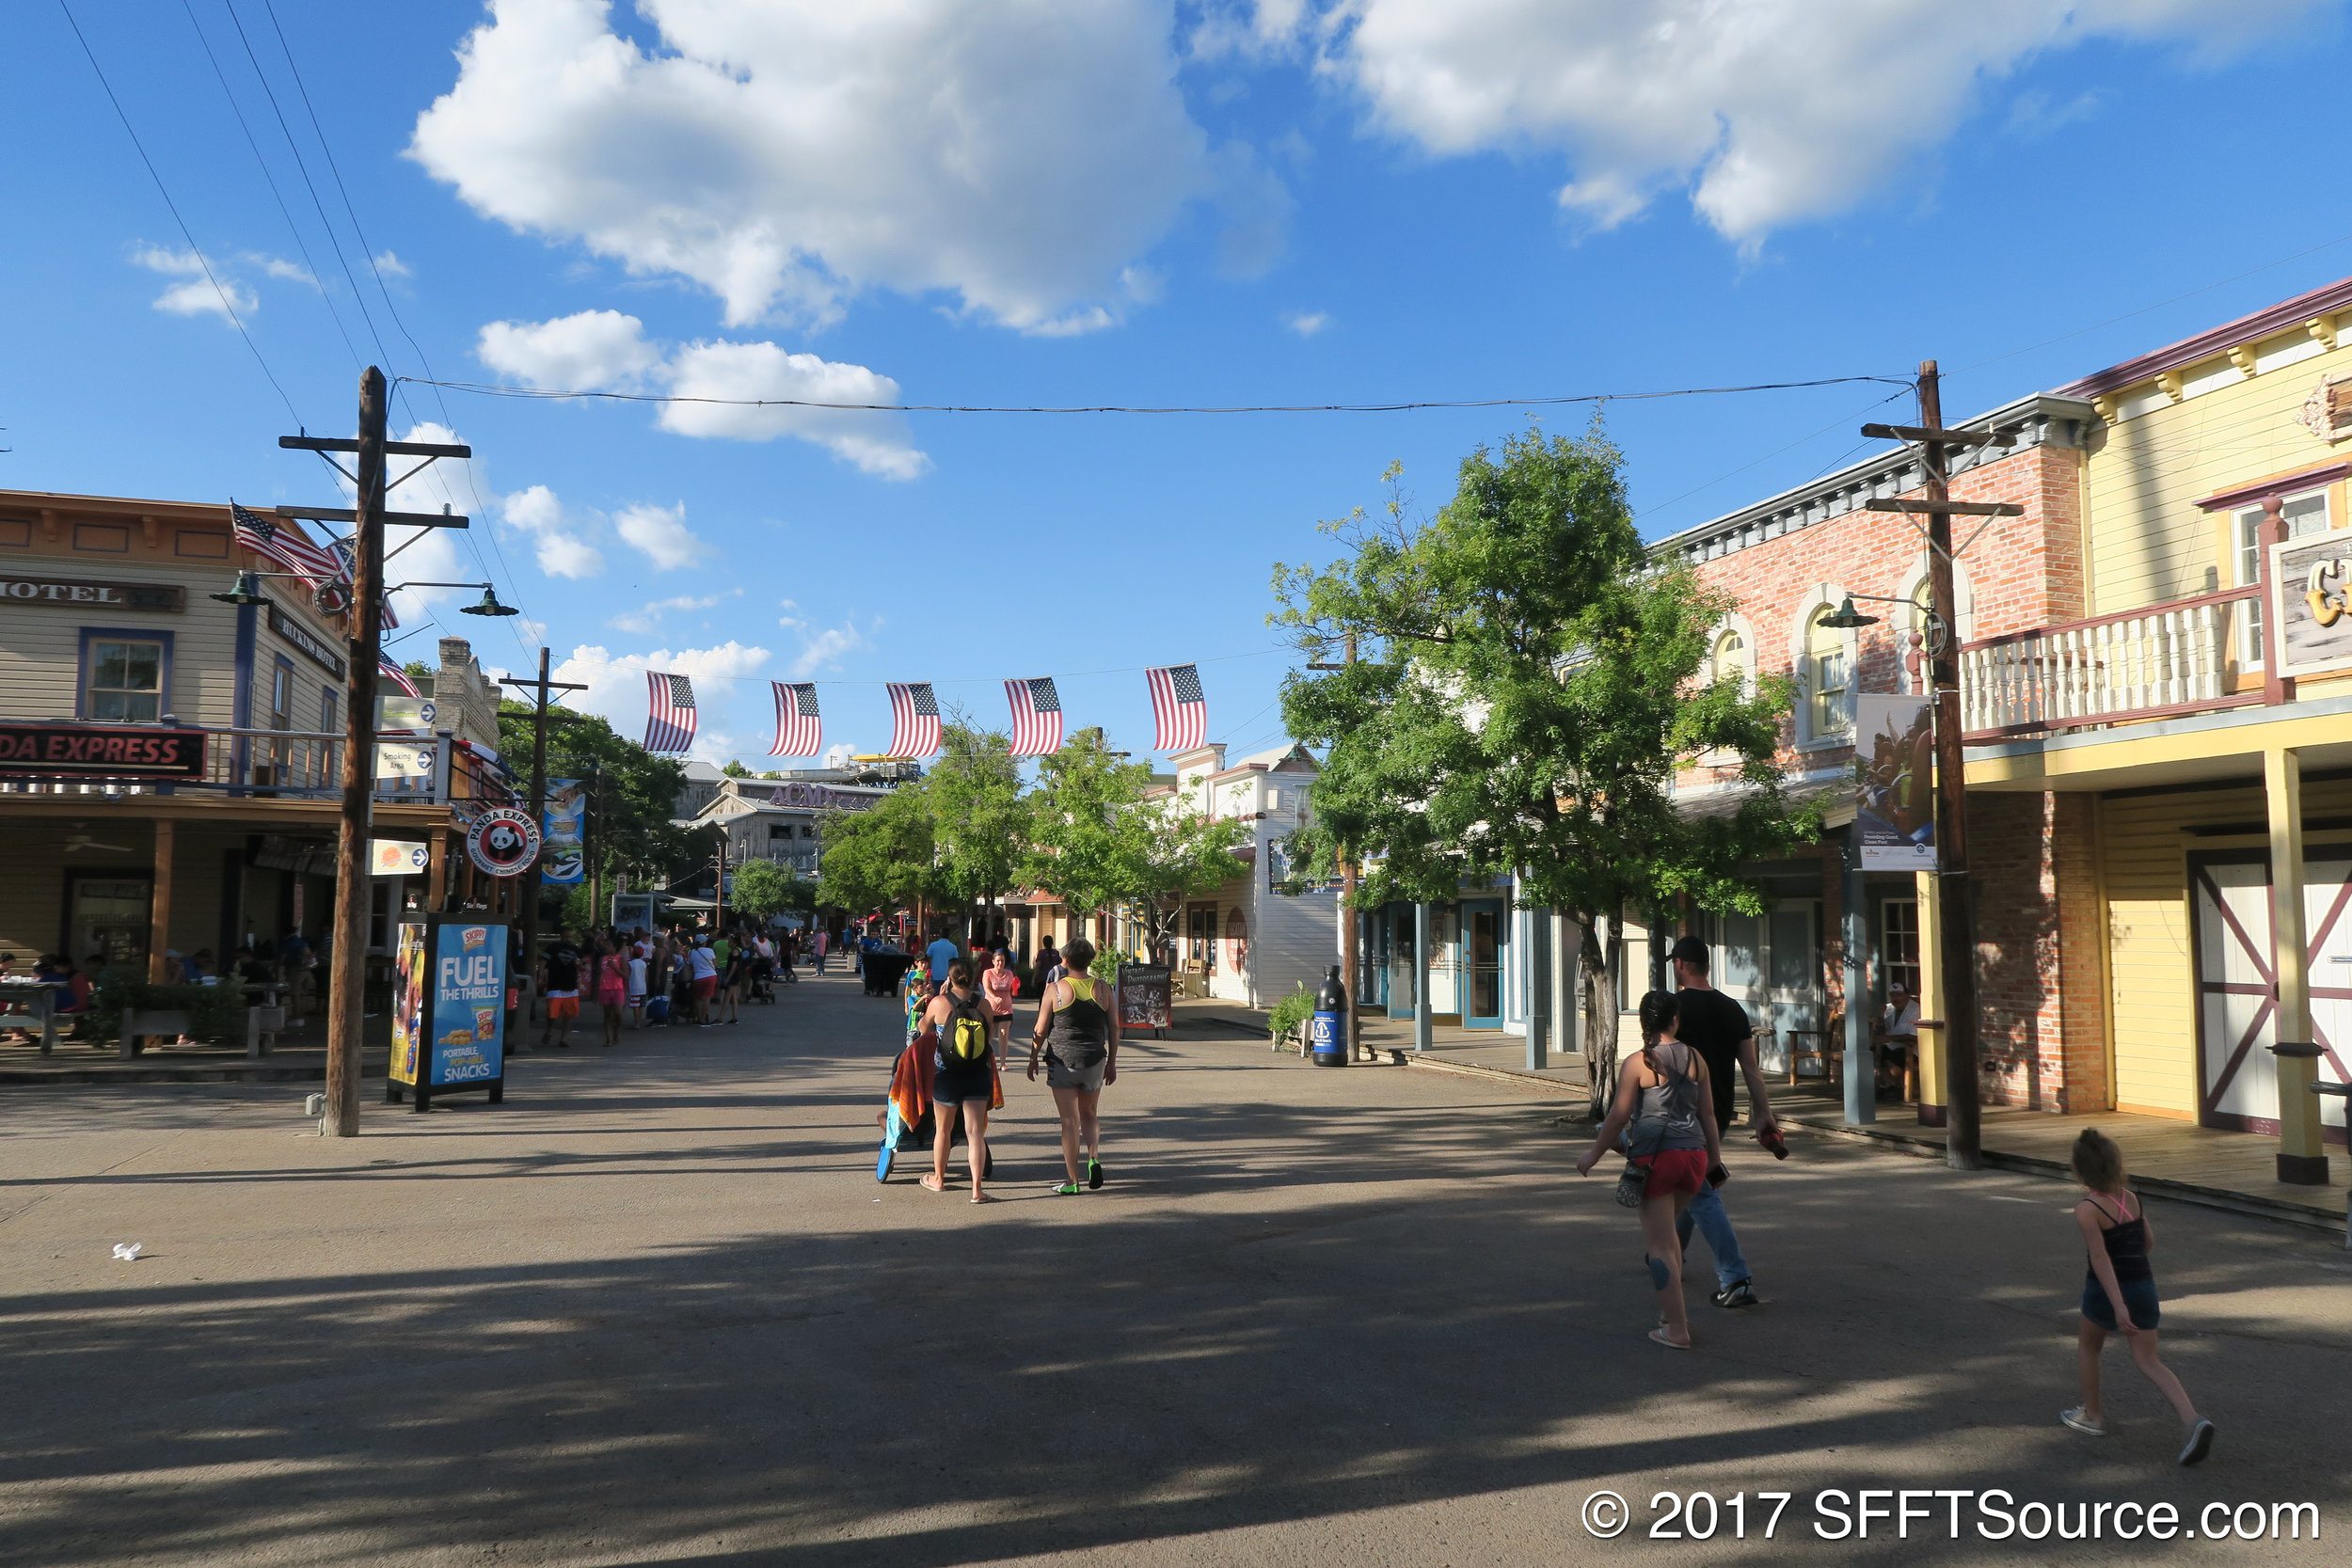 A look at the streets of Crackaxle Canyon.